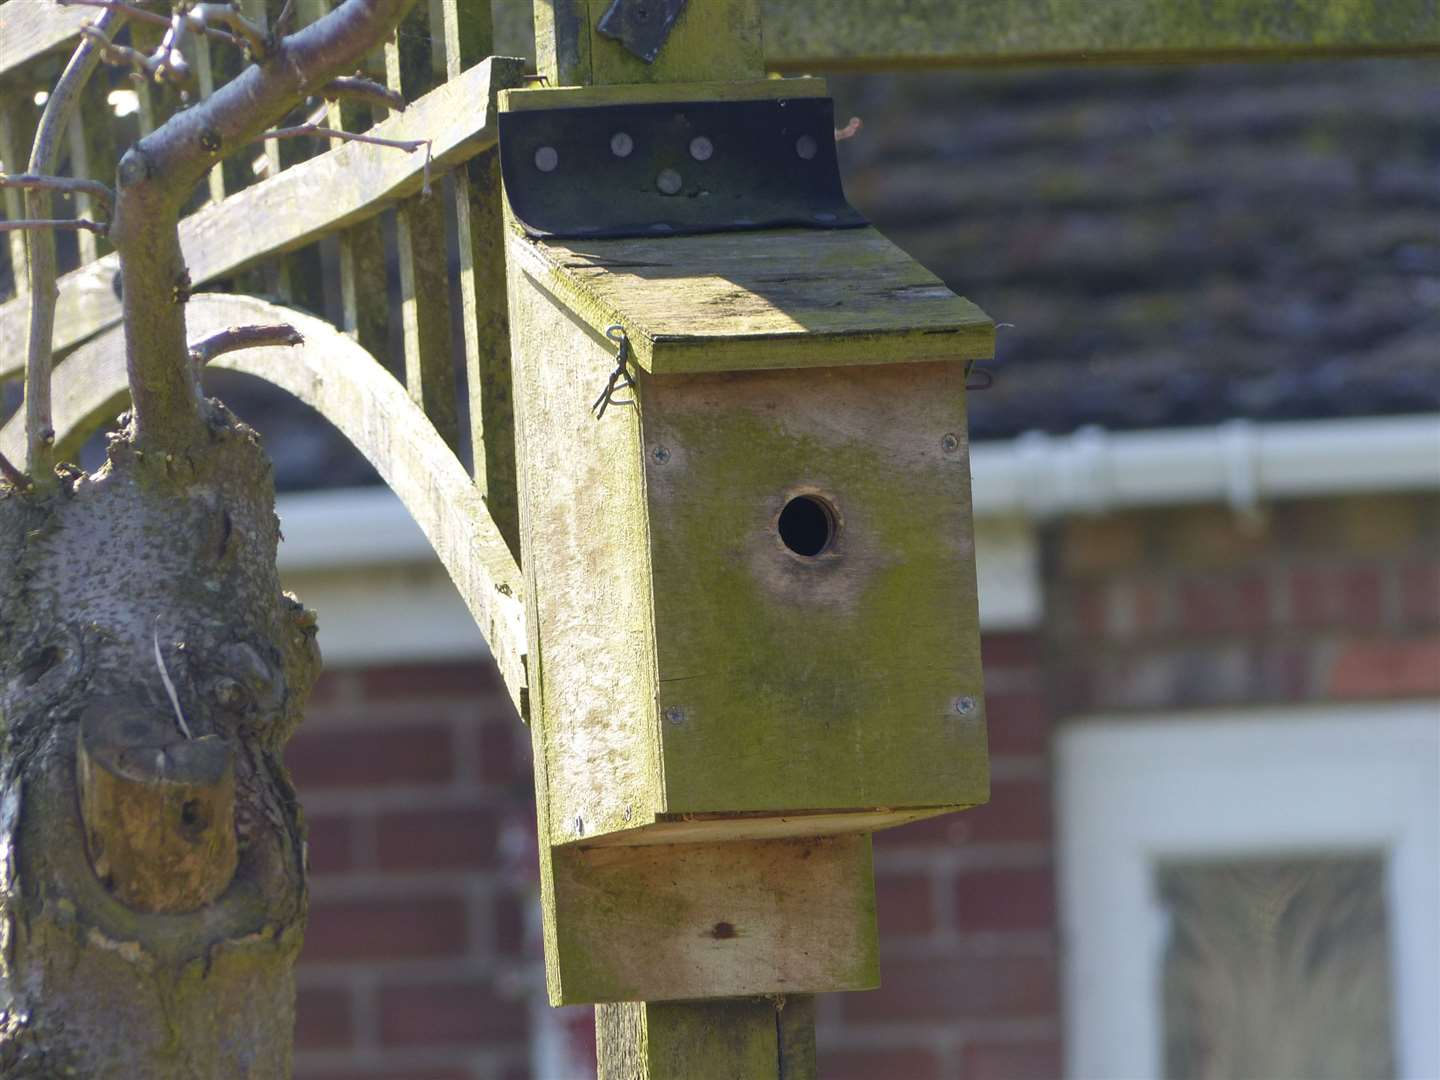 A bird box can help your wildlife photography